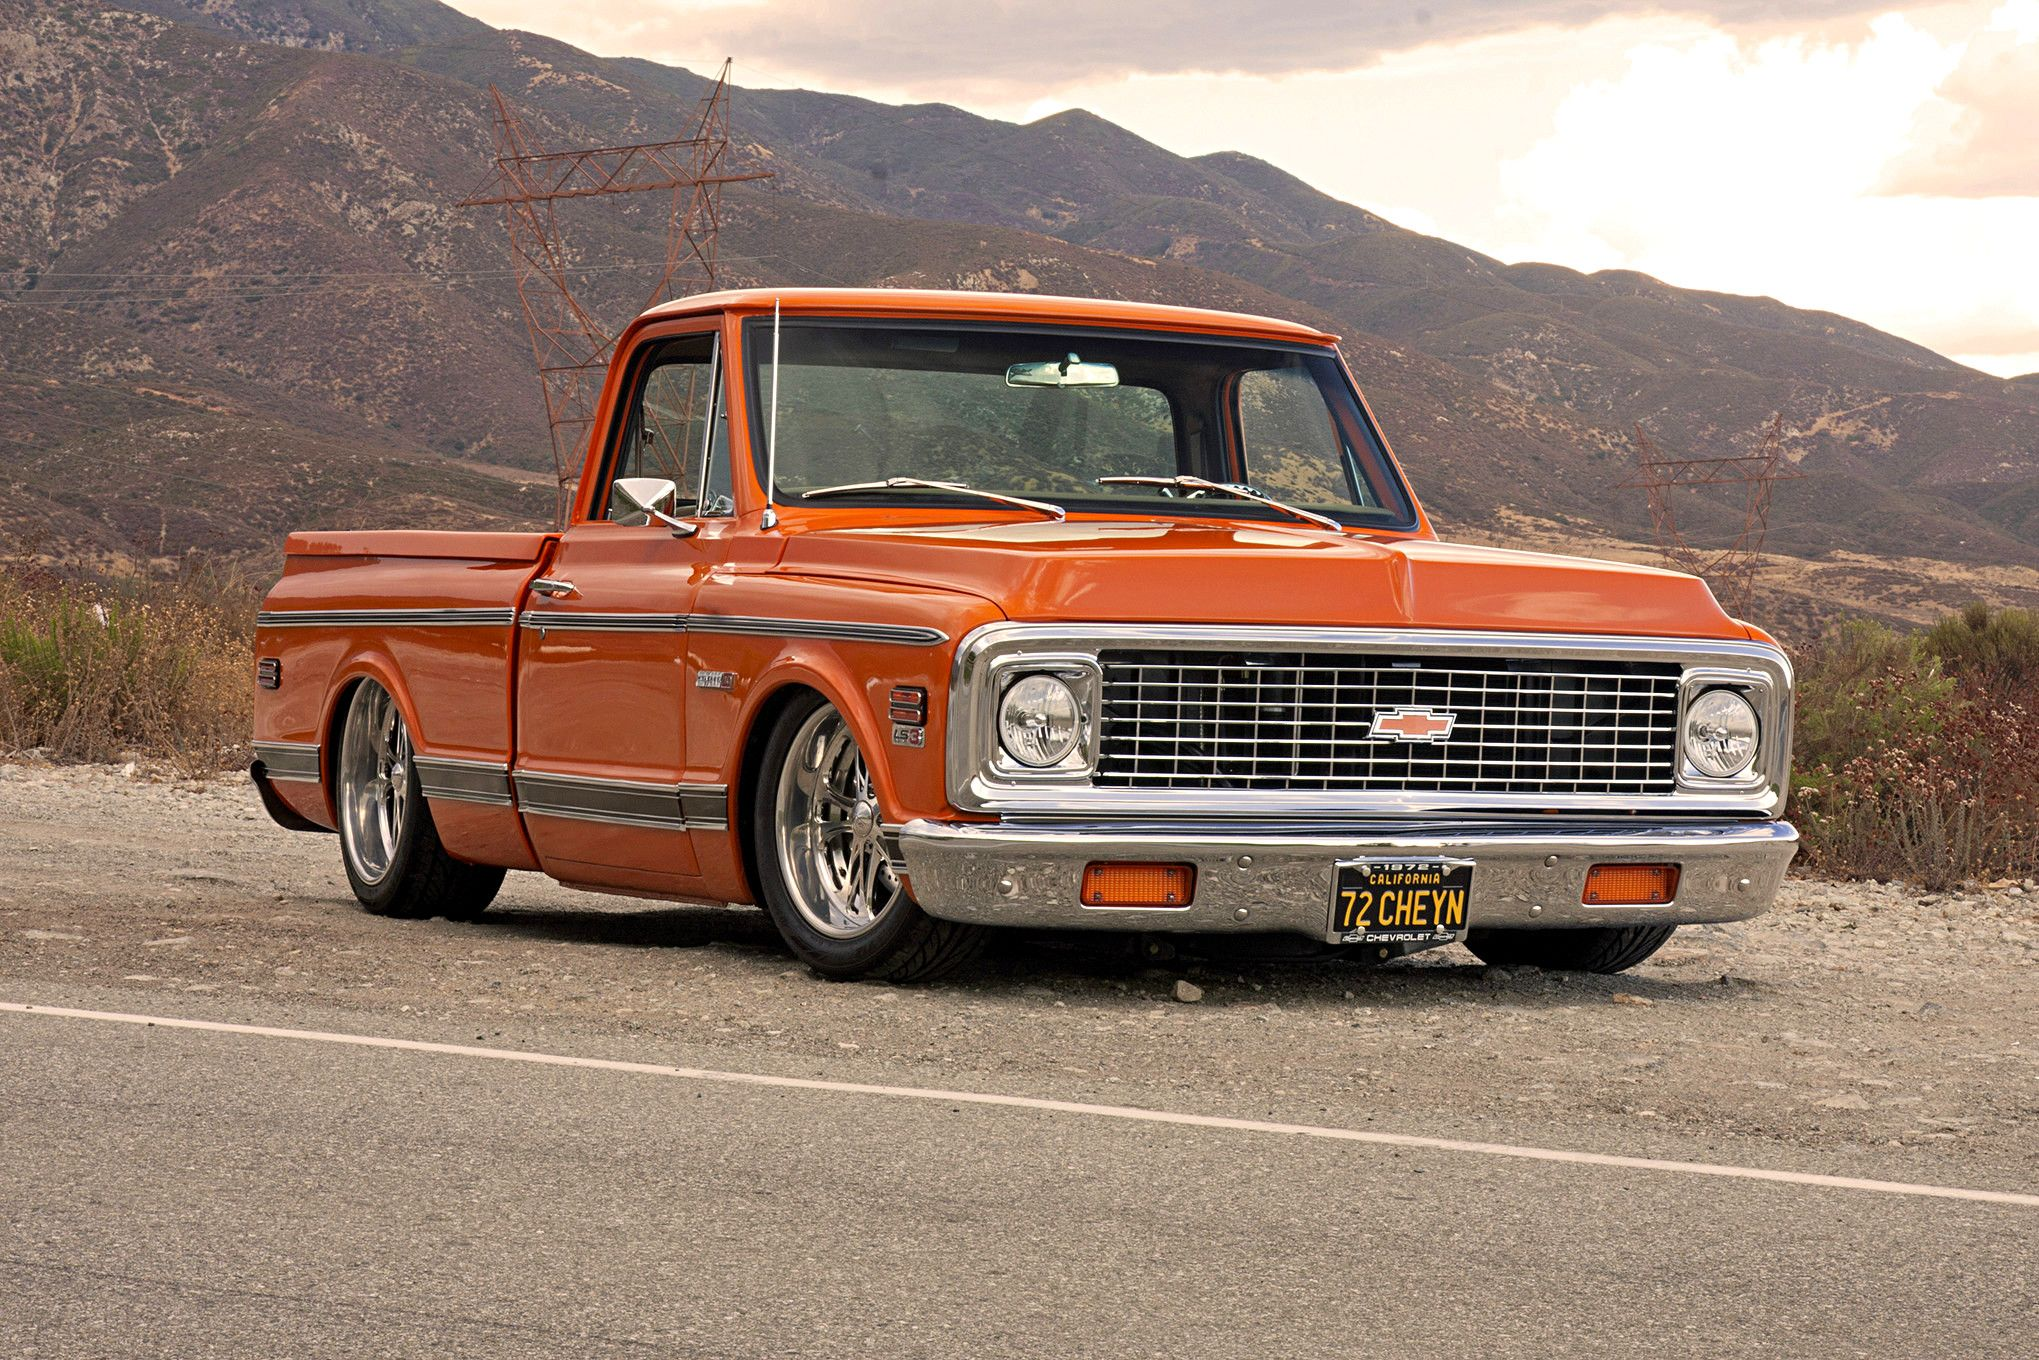 Photo Feature On A 1972 Chevy Cheyenne Truck 72 Chevy Truck